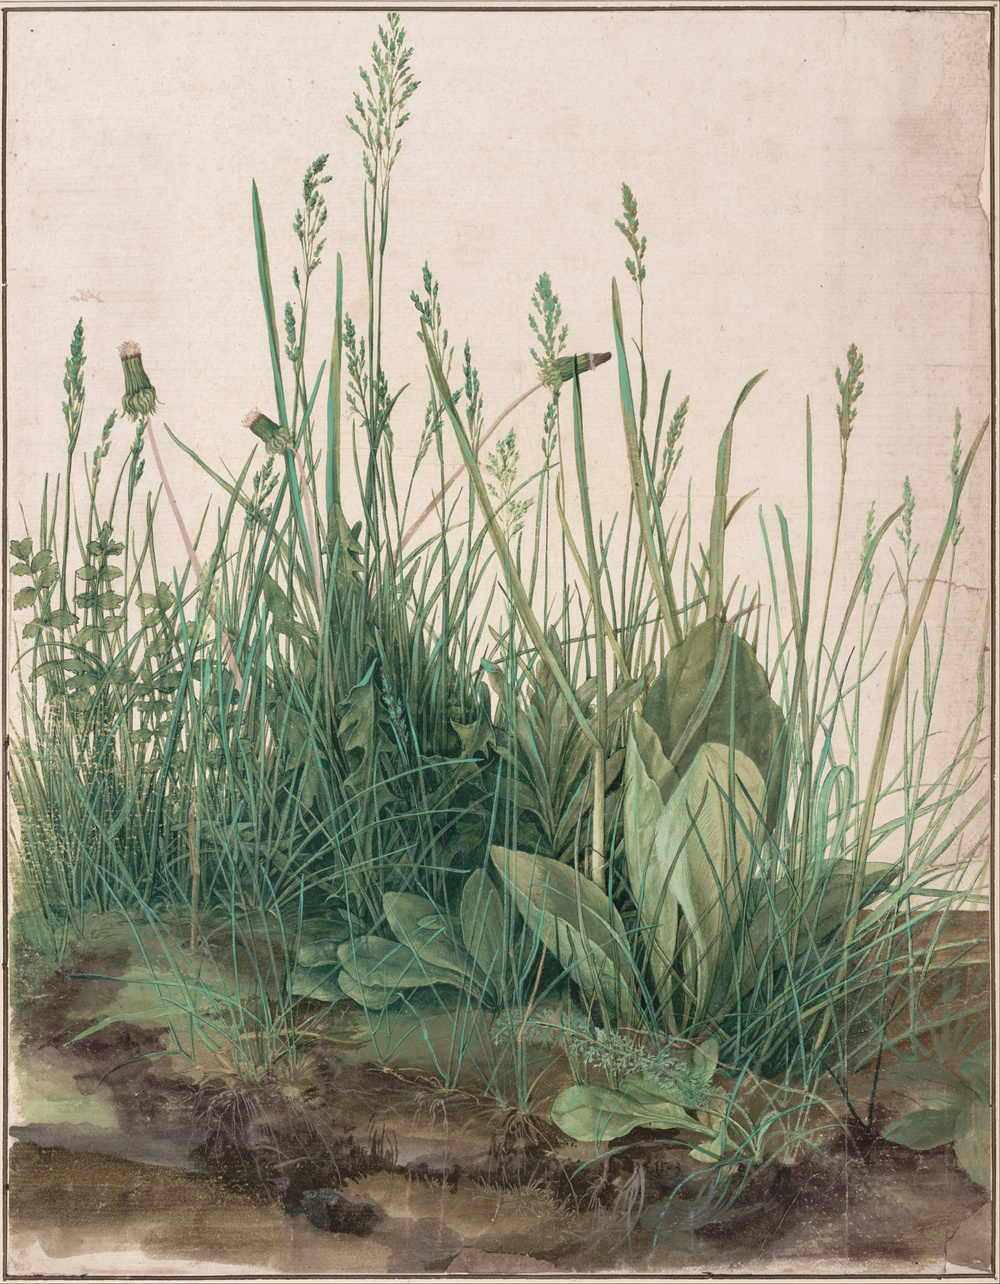 Albrecht Durer, Piece of Turf